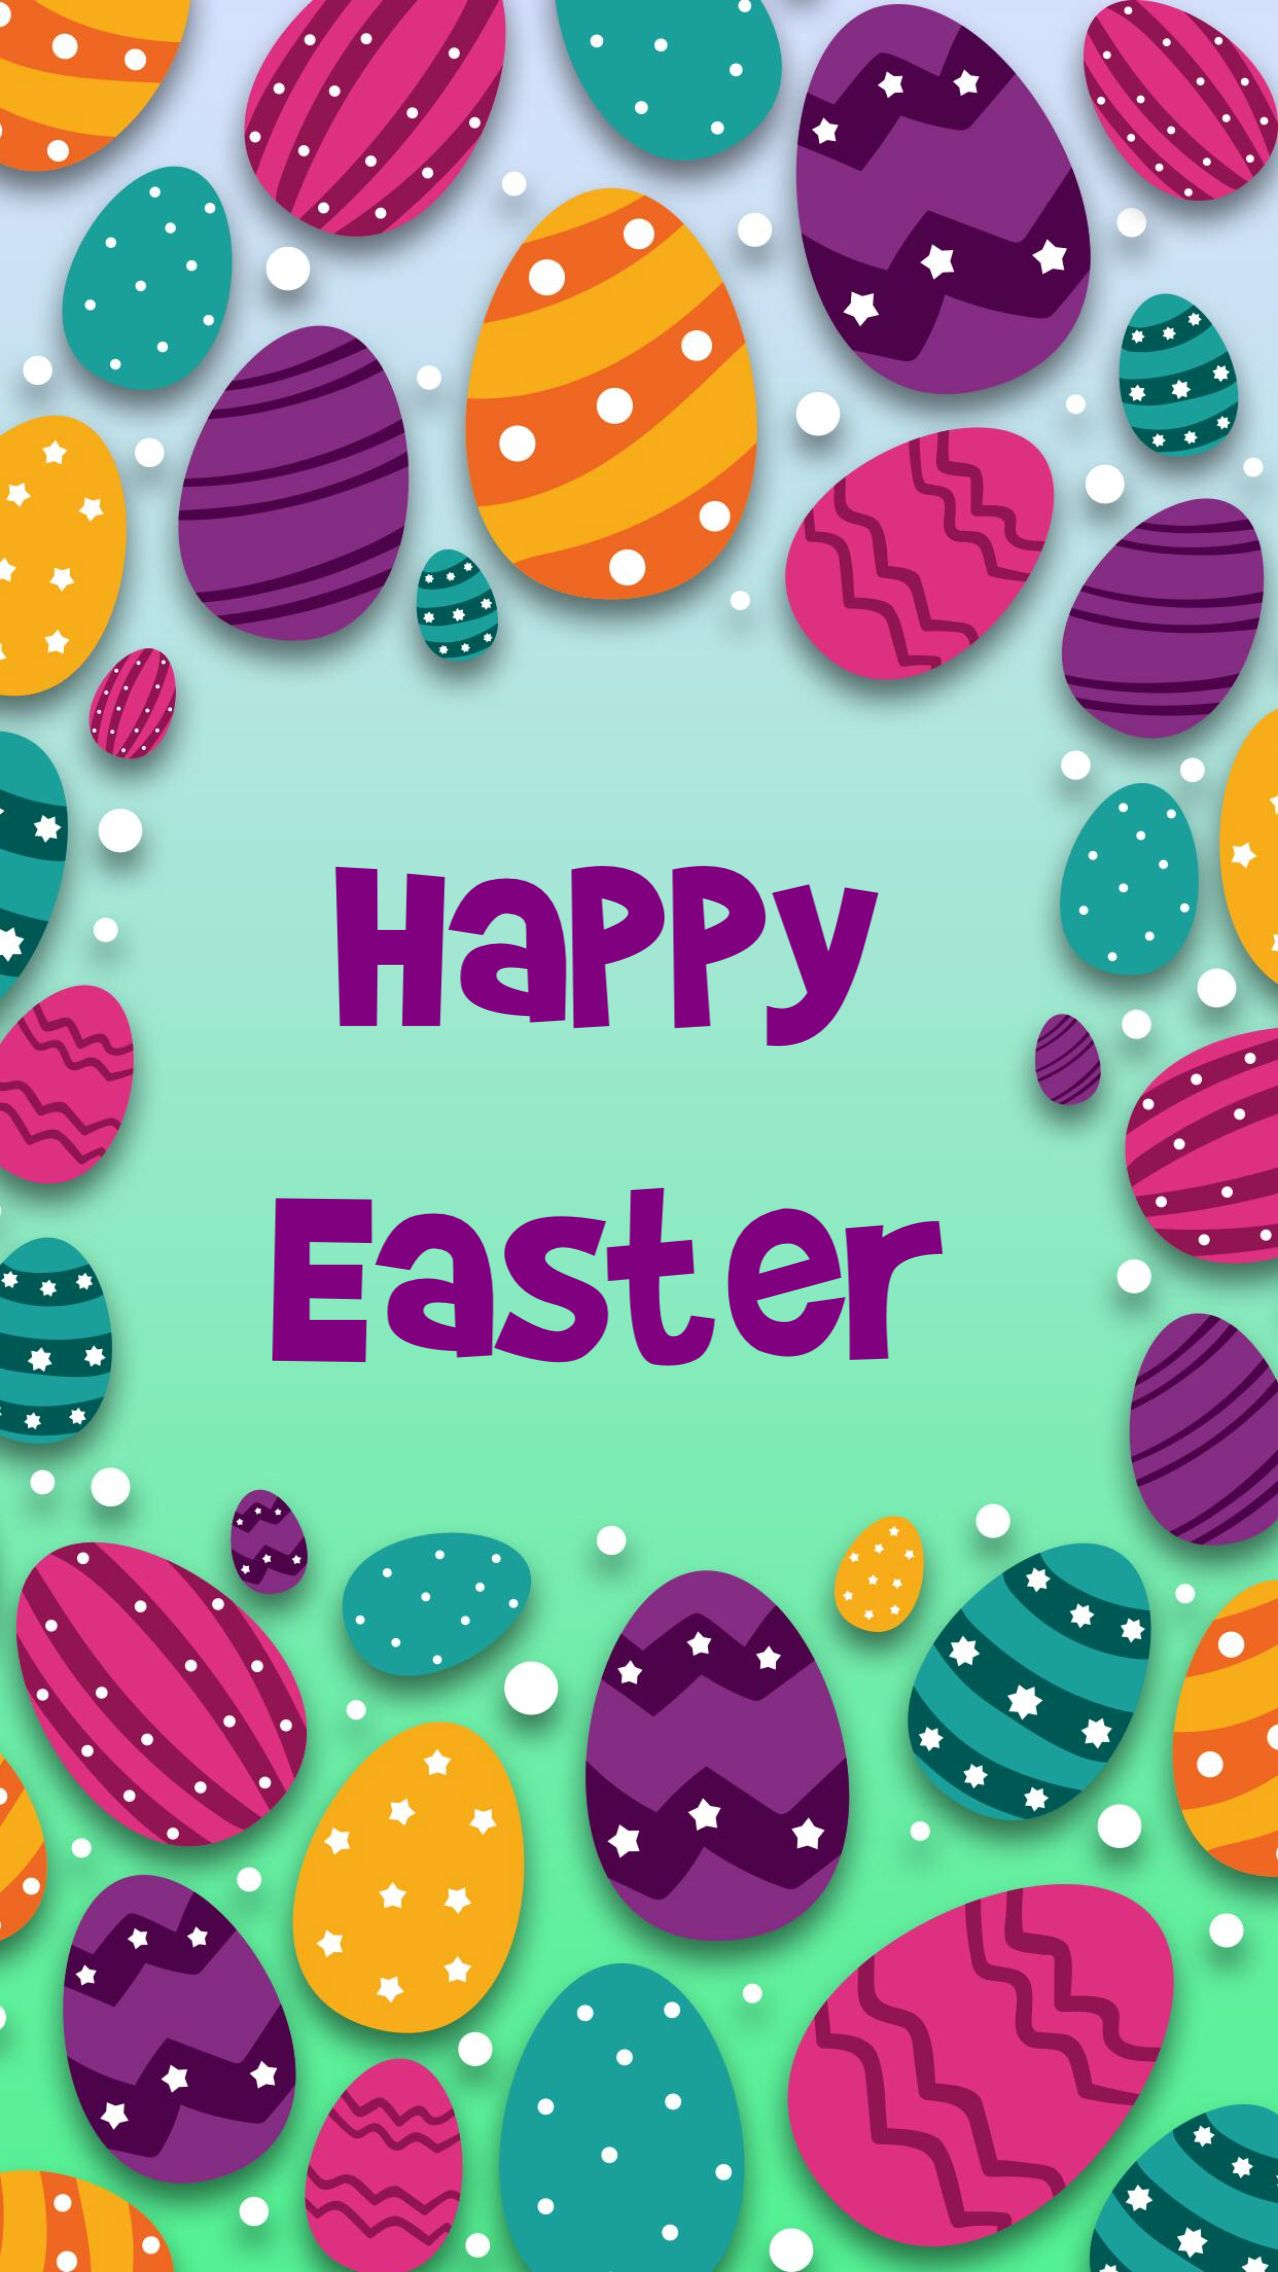 Pin By Trudi J Nalley On Easter Junk Happy Easter Wallpaper Easter Wallpaper Easter Images